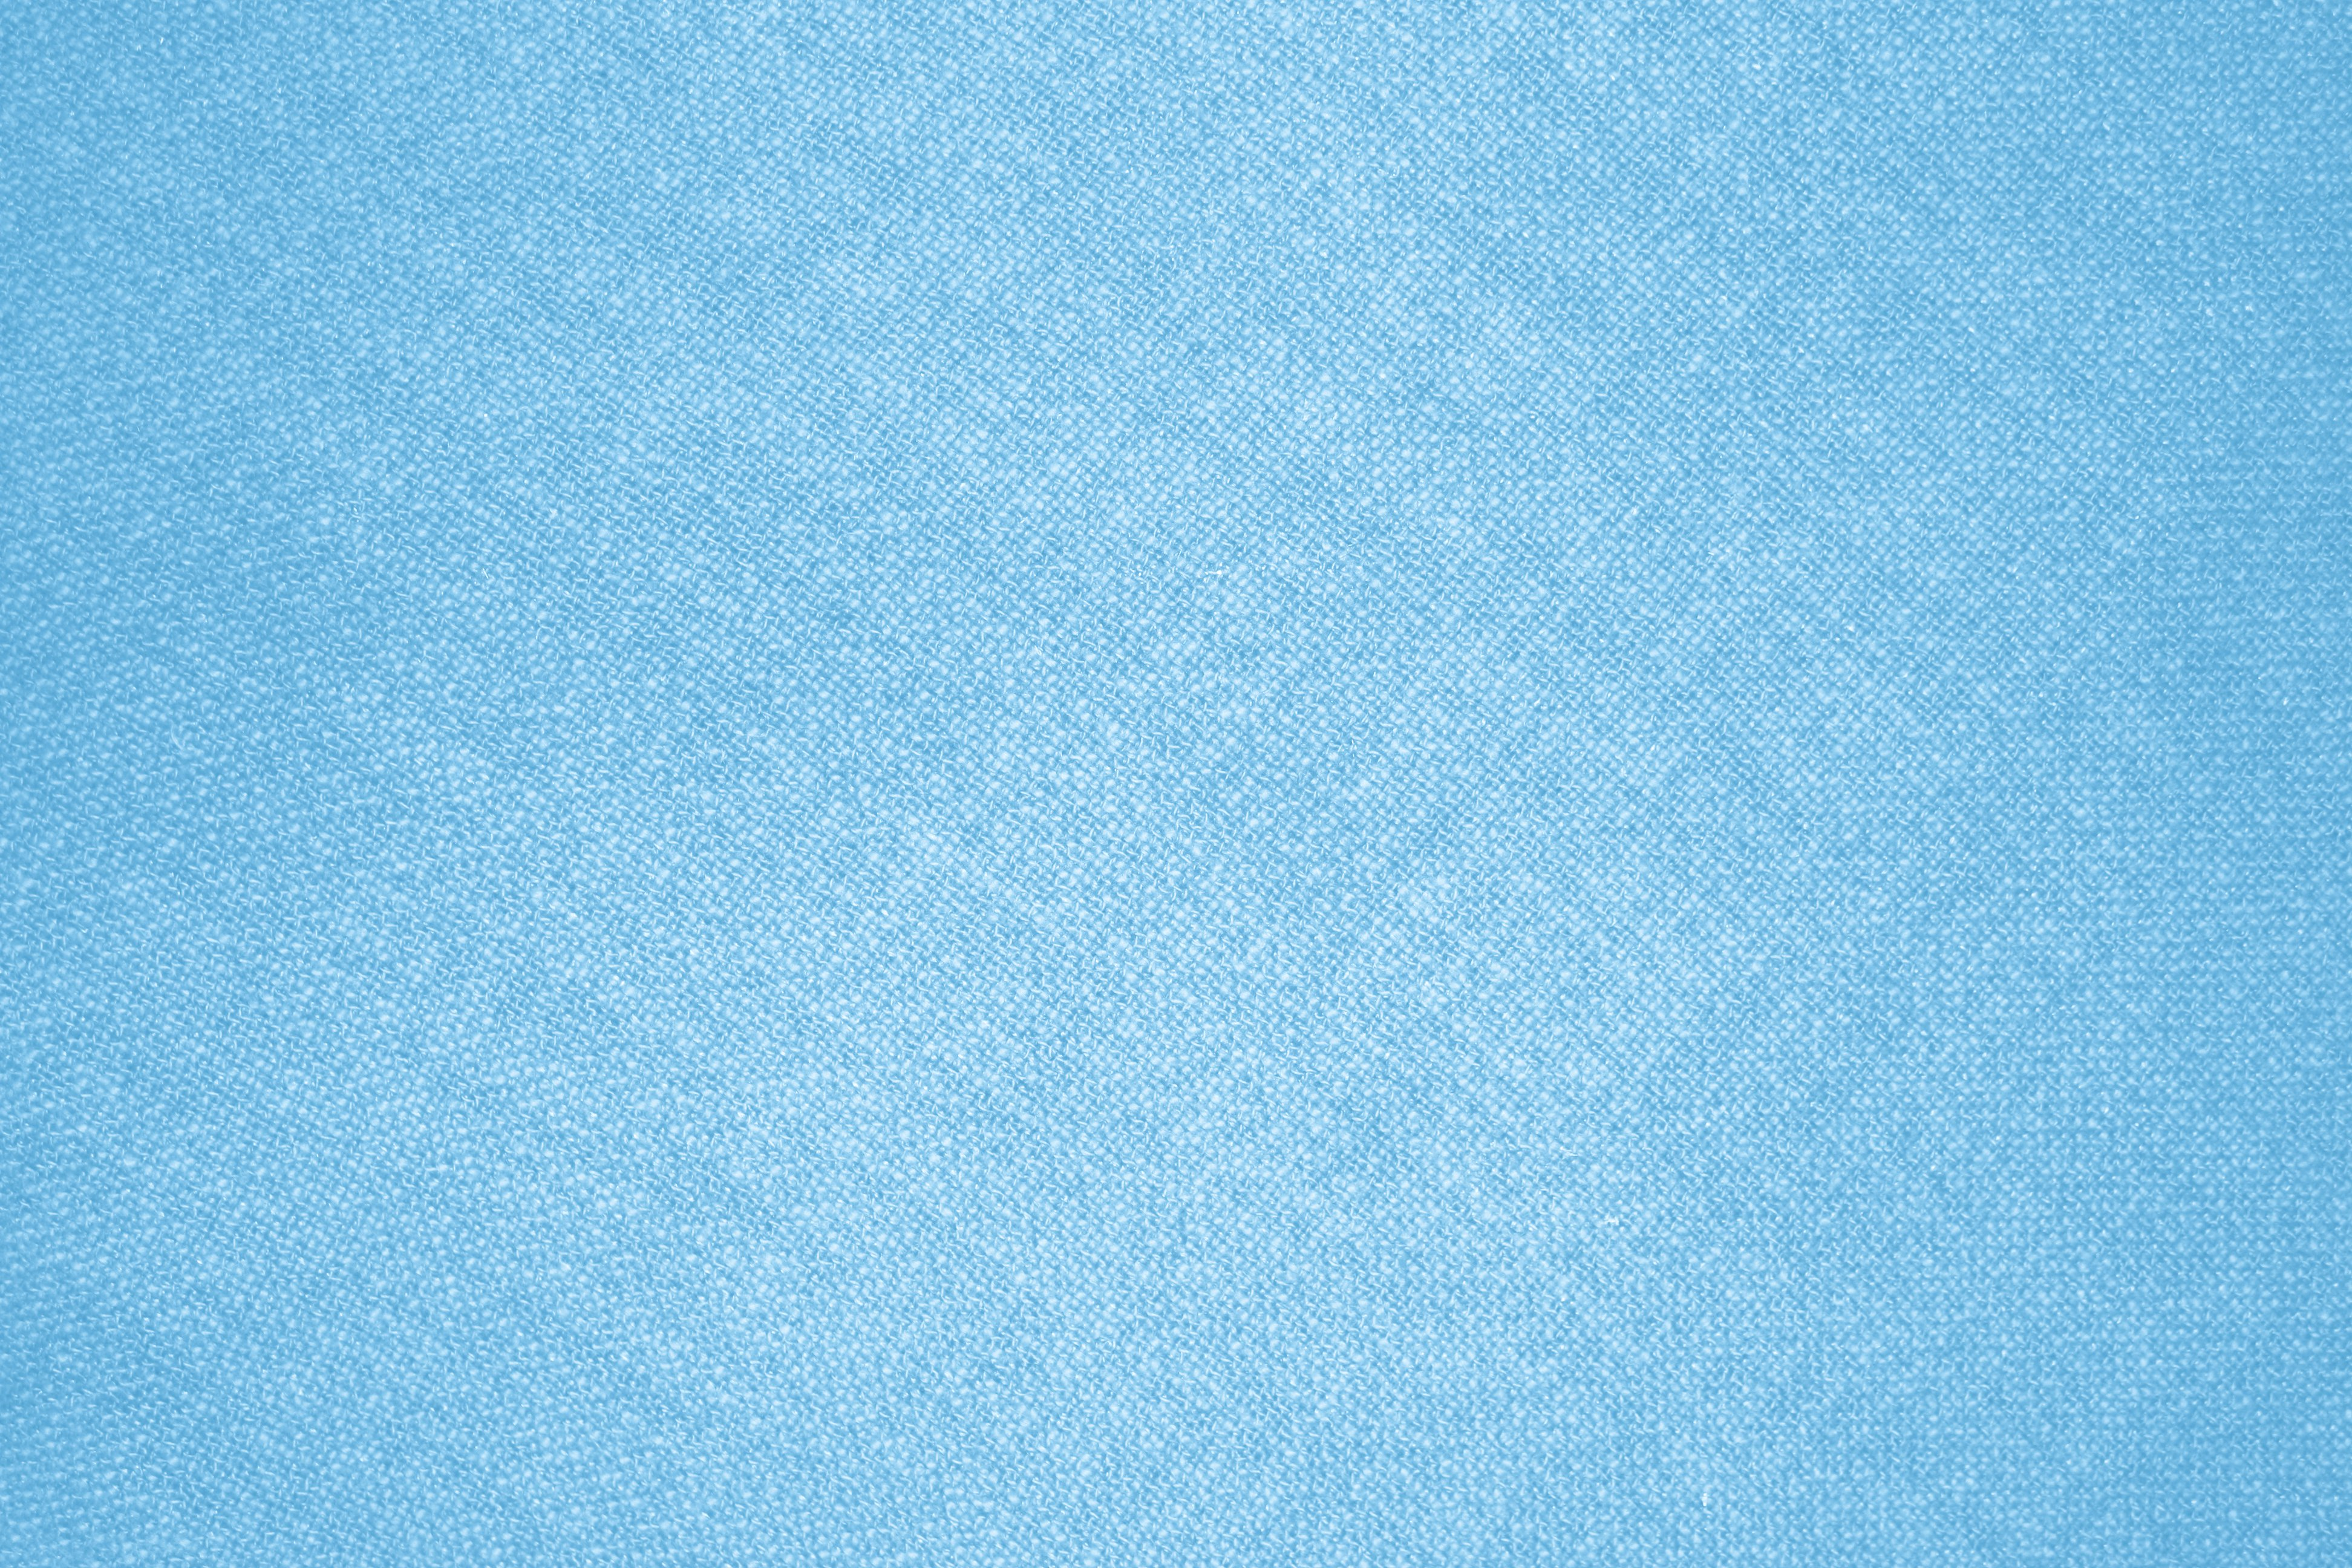 Baby Blue Fabric Texture - Free High Resolution Photo - Dimensions ...